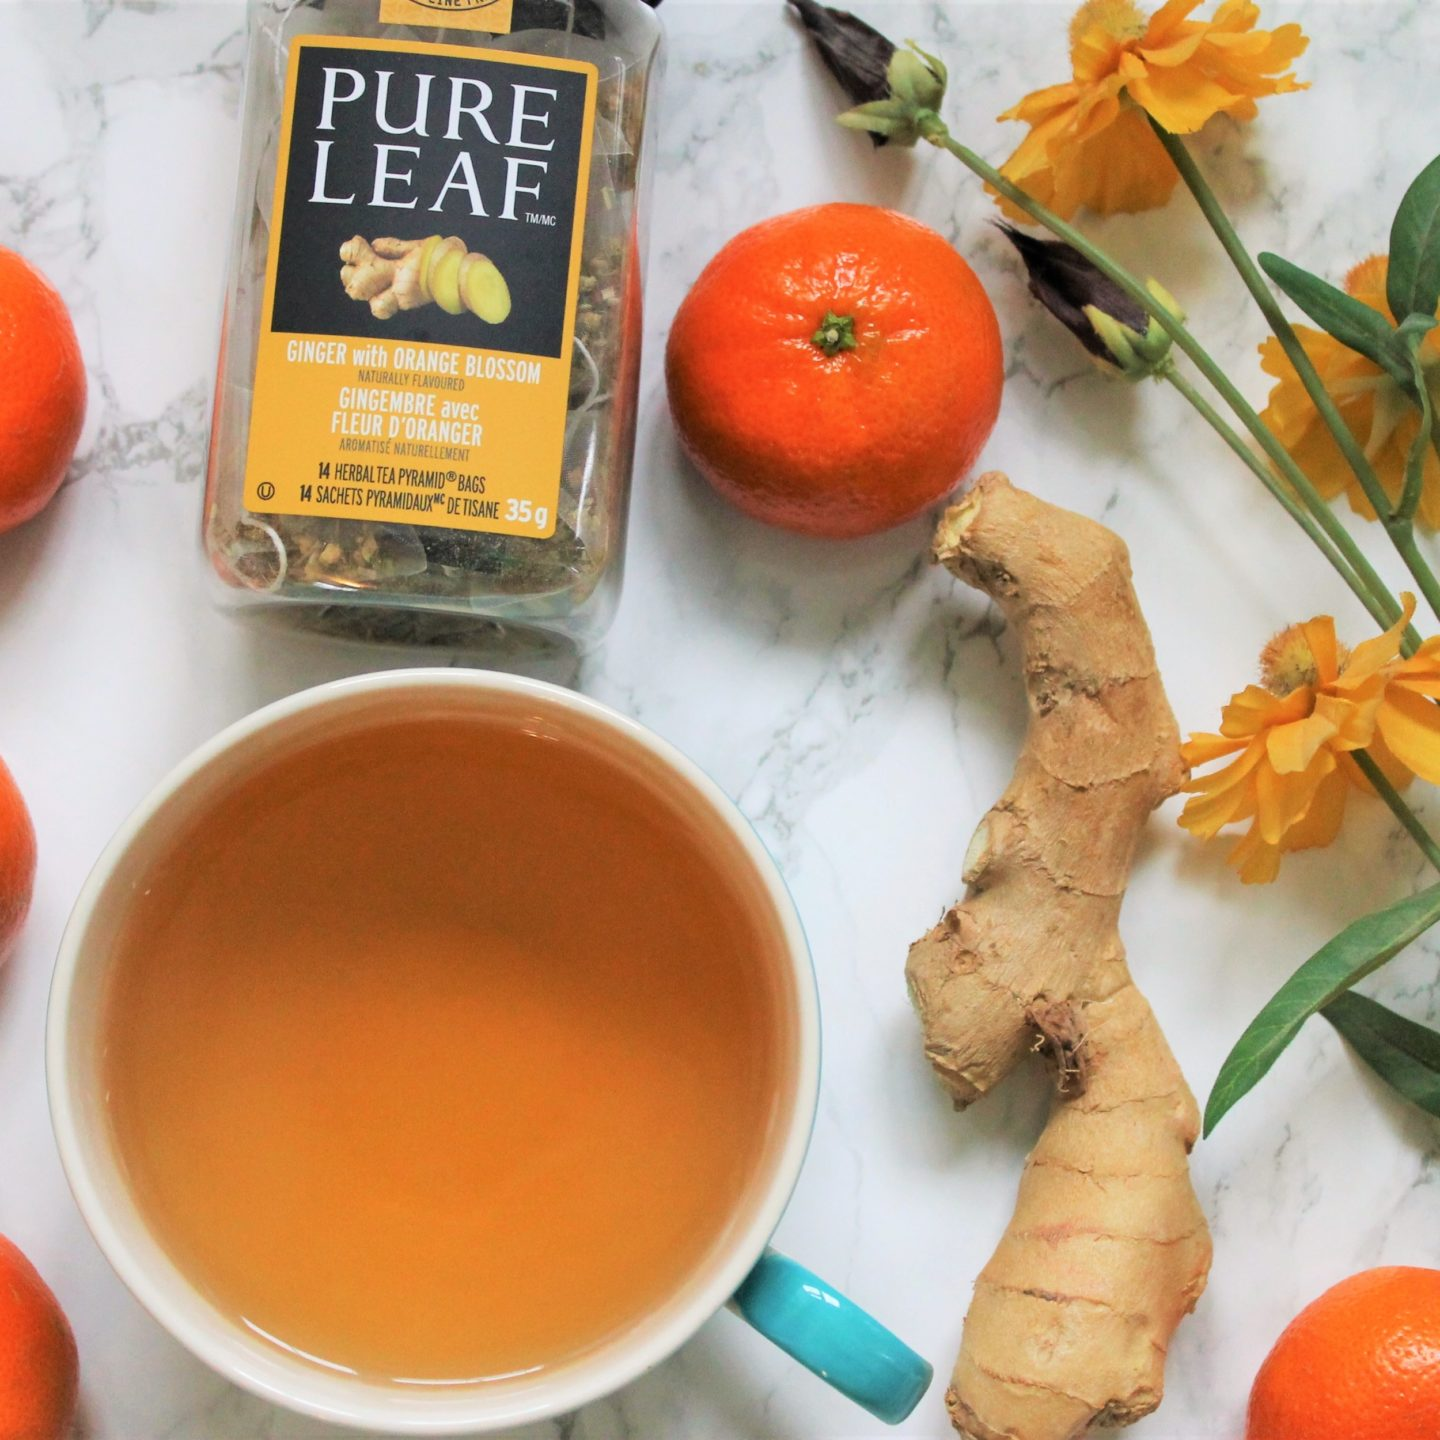 Pure Leaf Ginger with Orange Blossom Tea Review